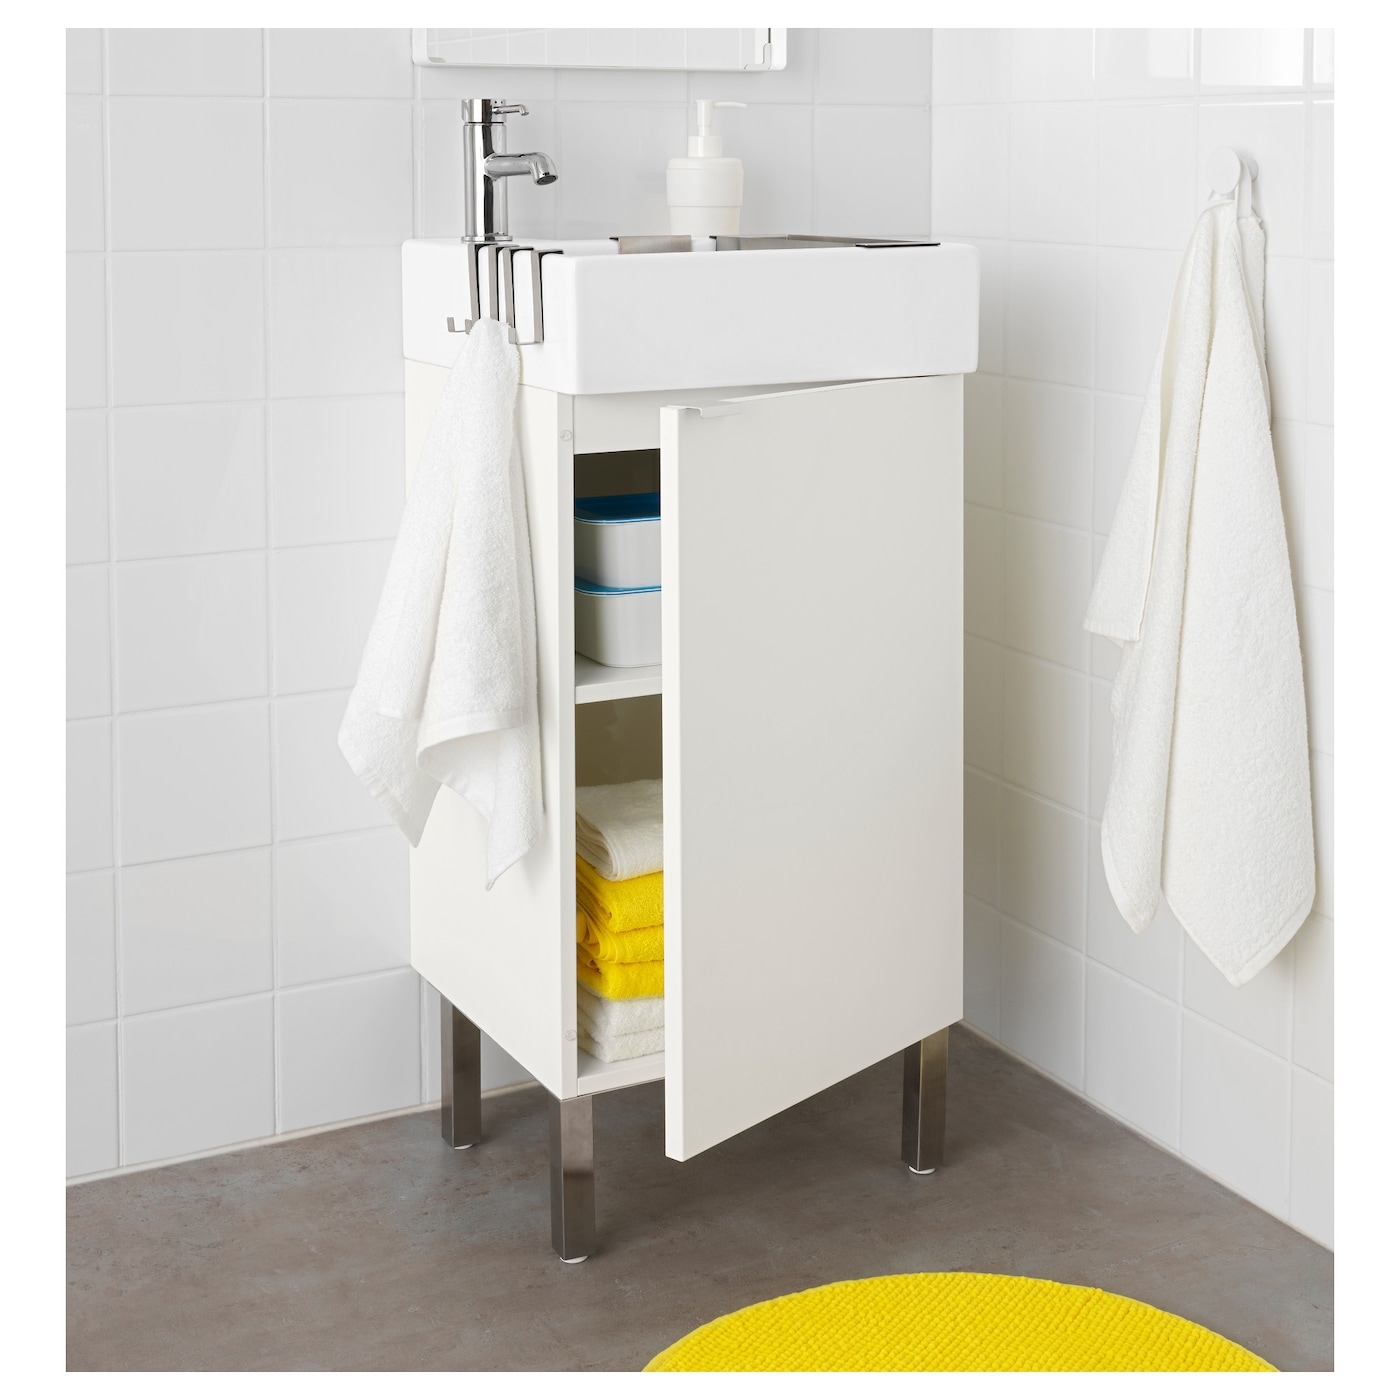 lill ngen washbasin cabinet with 1 door white 41 x 41 x 92 cm ikea. Black Bedroom Furniture Sets. Home Design Ideas